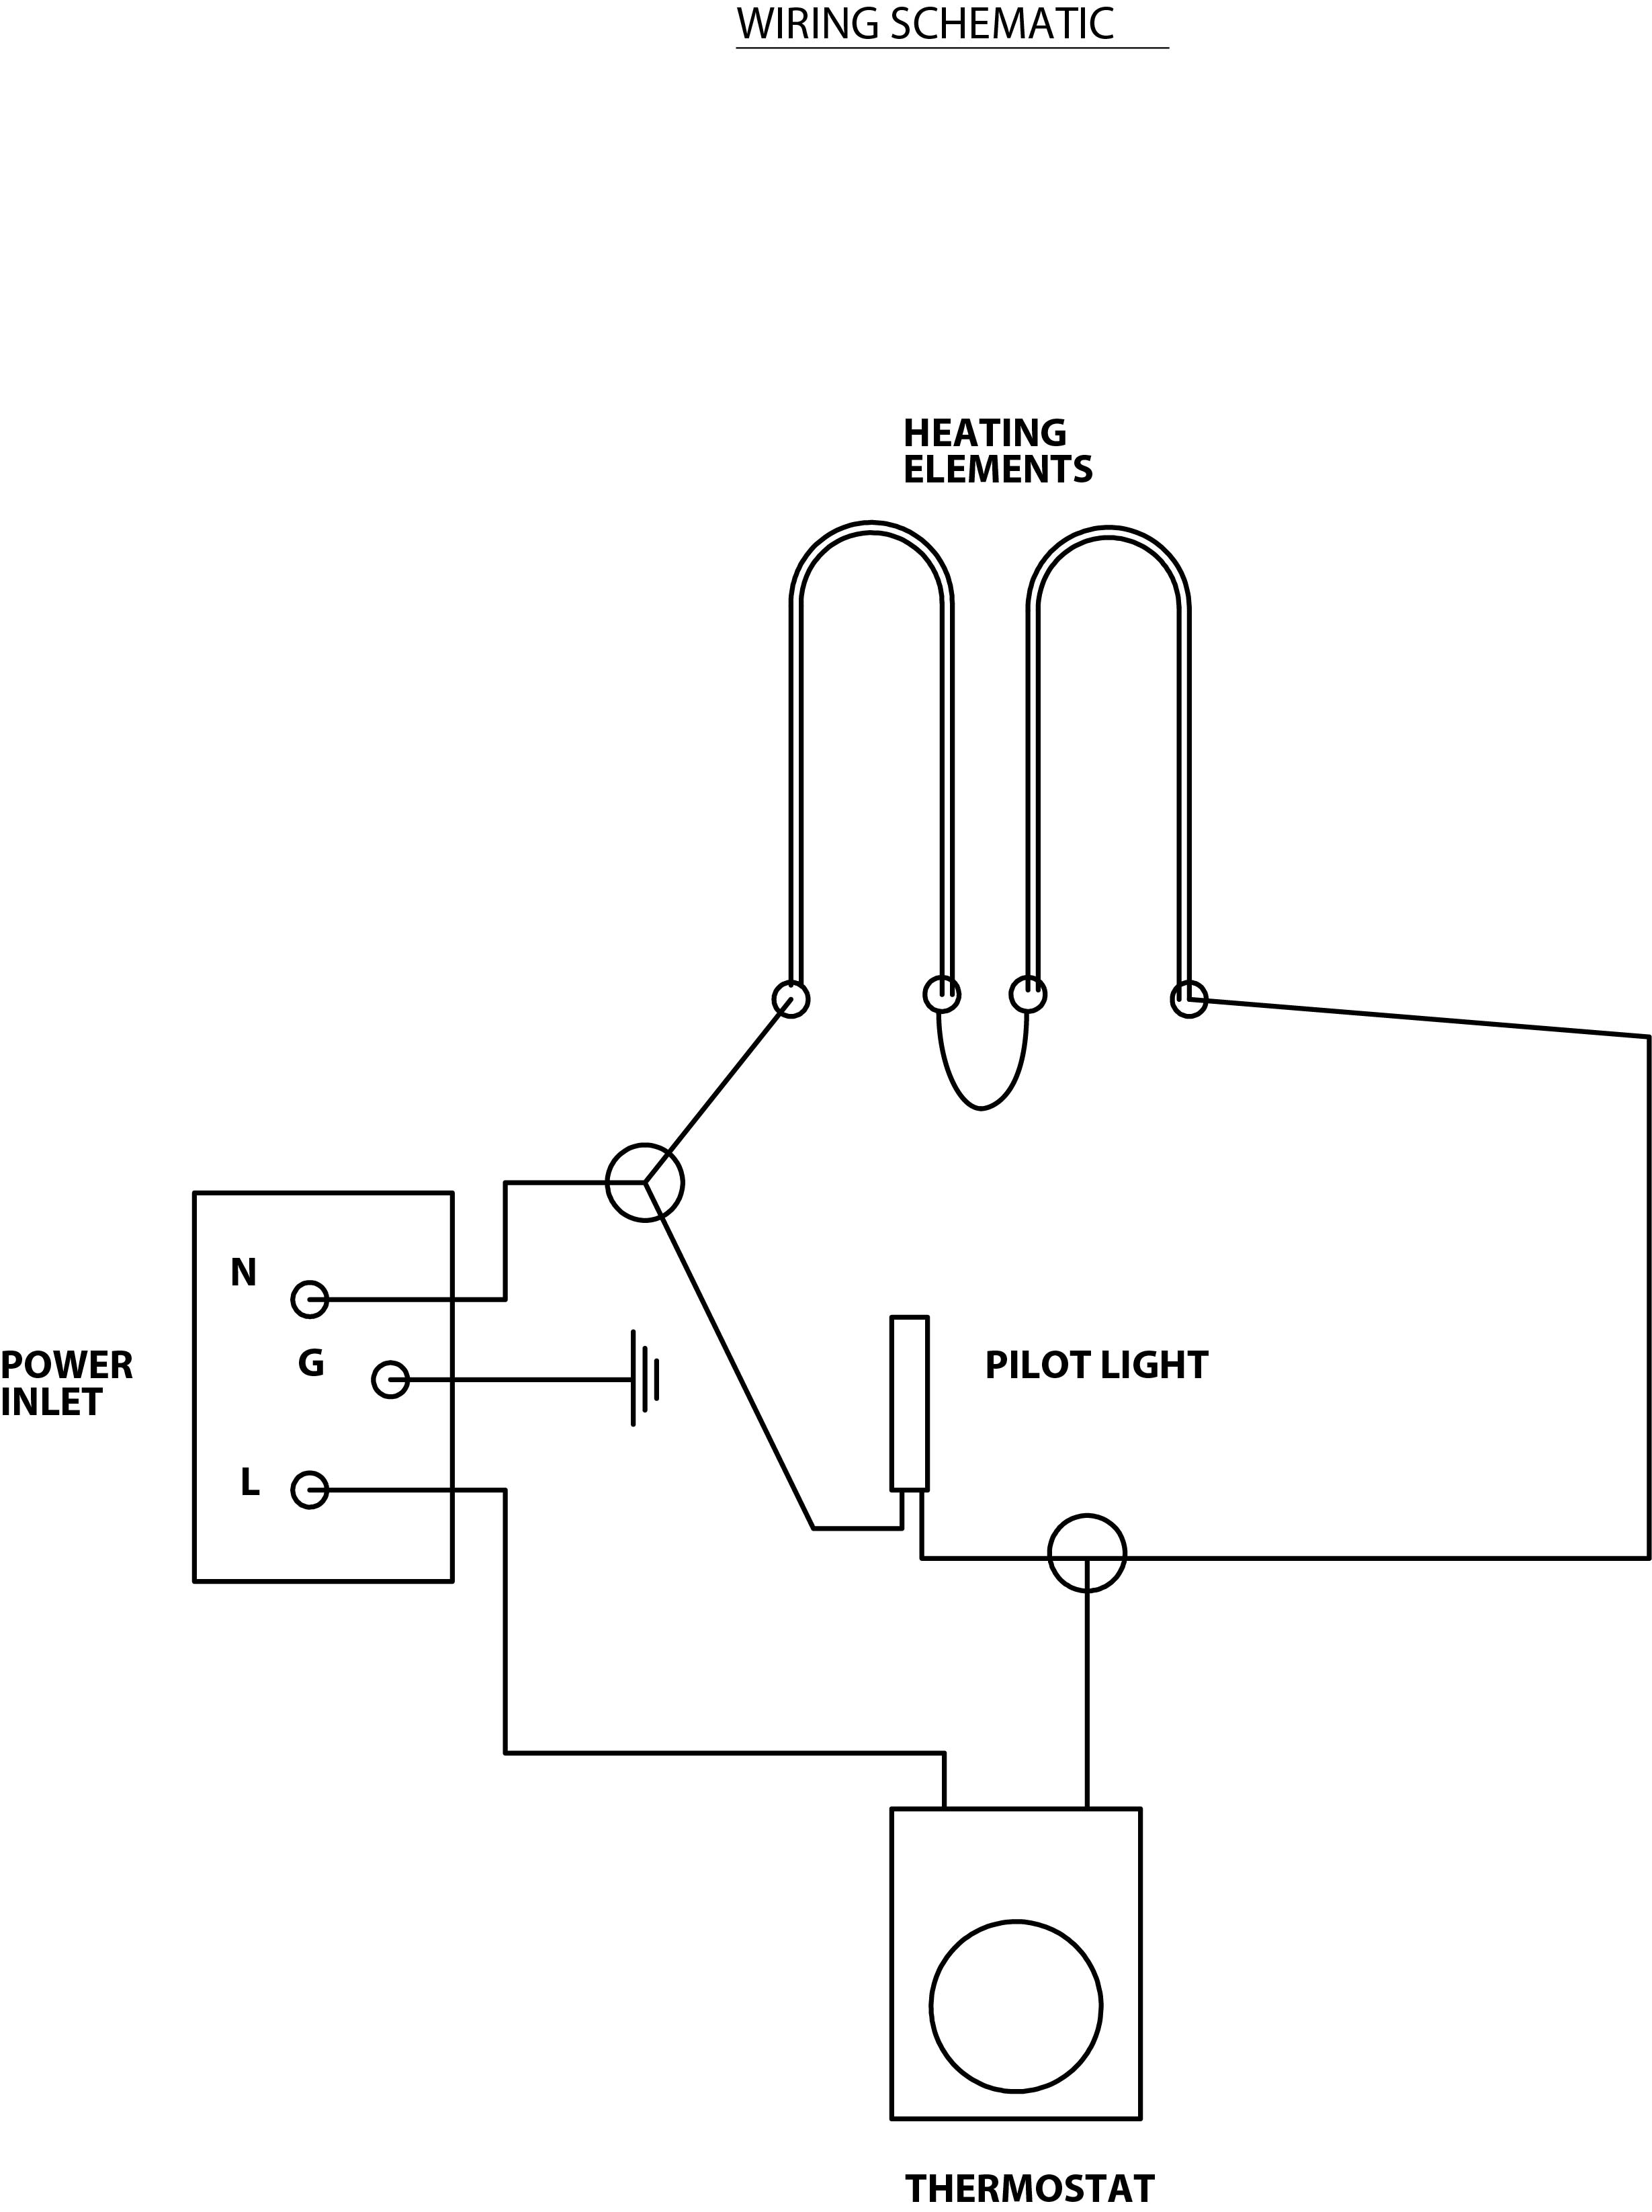 Basic Oven Wiring Diagram Schemes 3 Wire Range Schematic Type 4 Drywire Phoenix International Wall Heater Thermostat